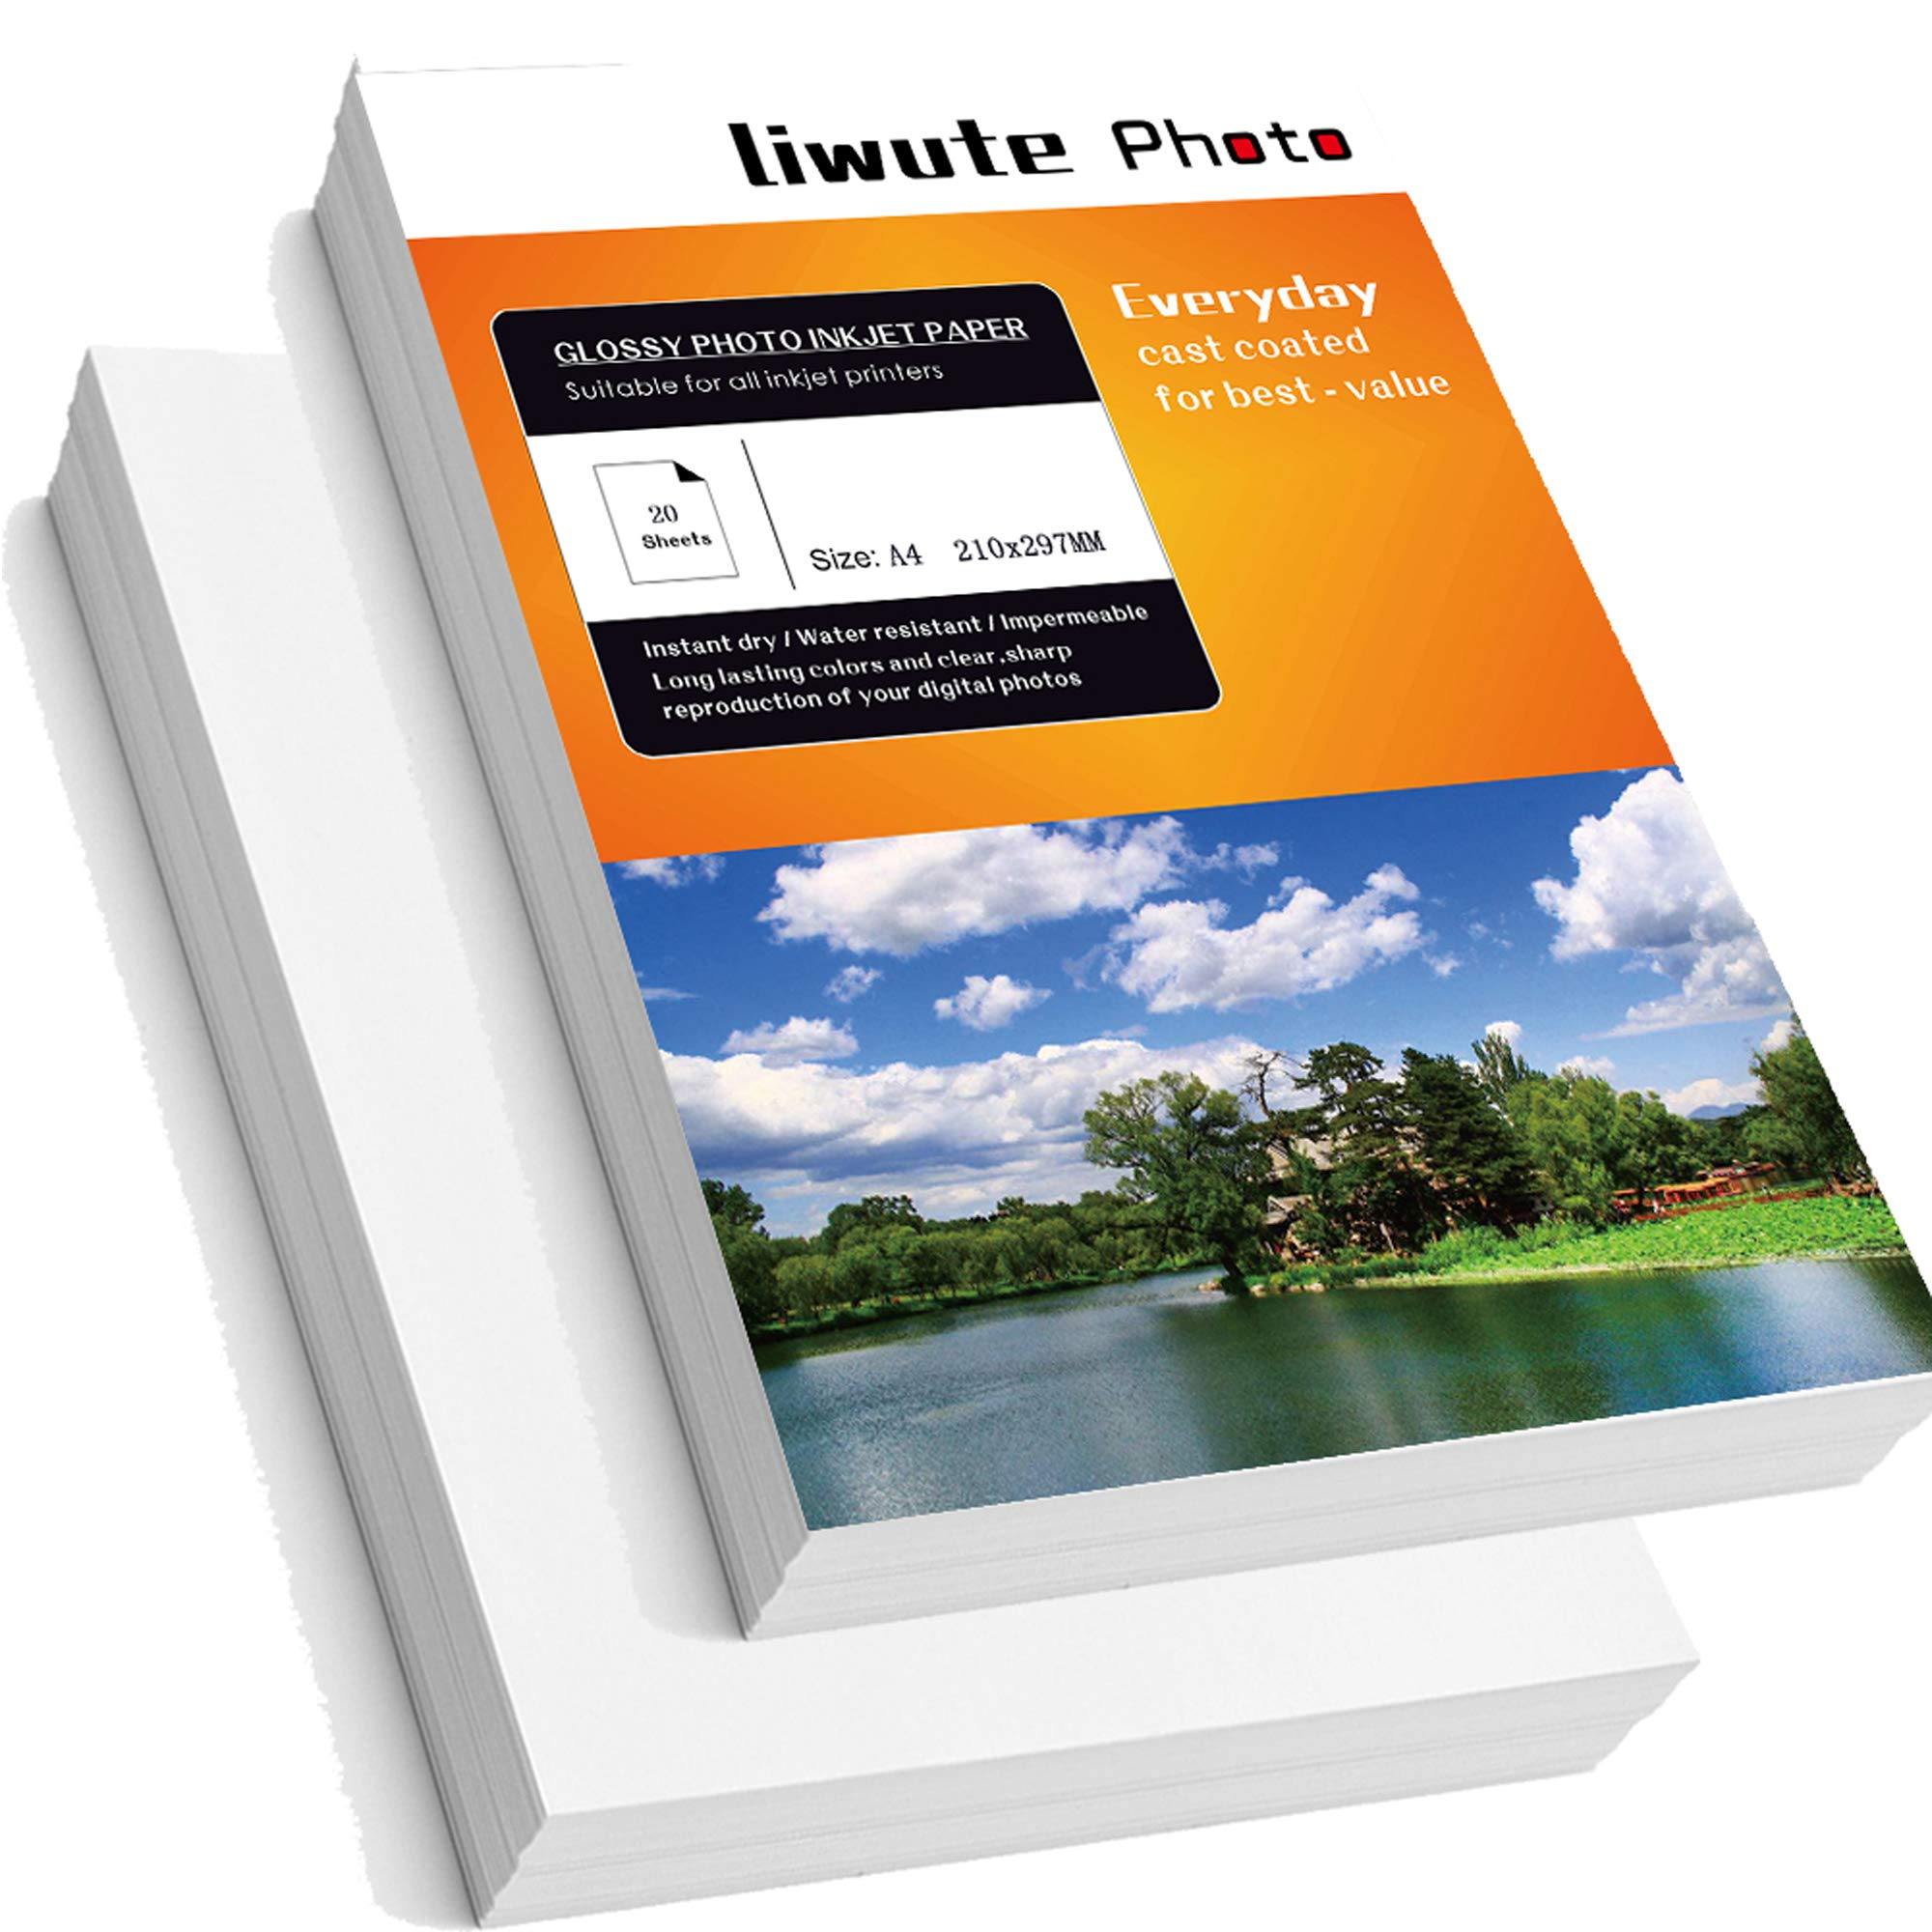 LIWUTE Double Sided Glossy Photo Paper,Dries Immediately,Double-Sided Printfor, for Laser Printers, Professional Color Laser Printing Paper,A4, 11.7'' x 8.3'', 128 gsm,50 Sheets by LIWUTE